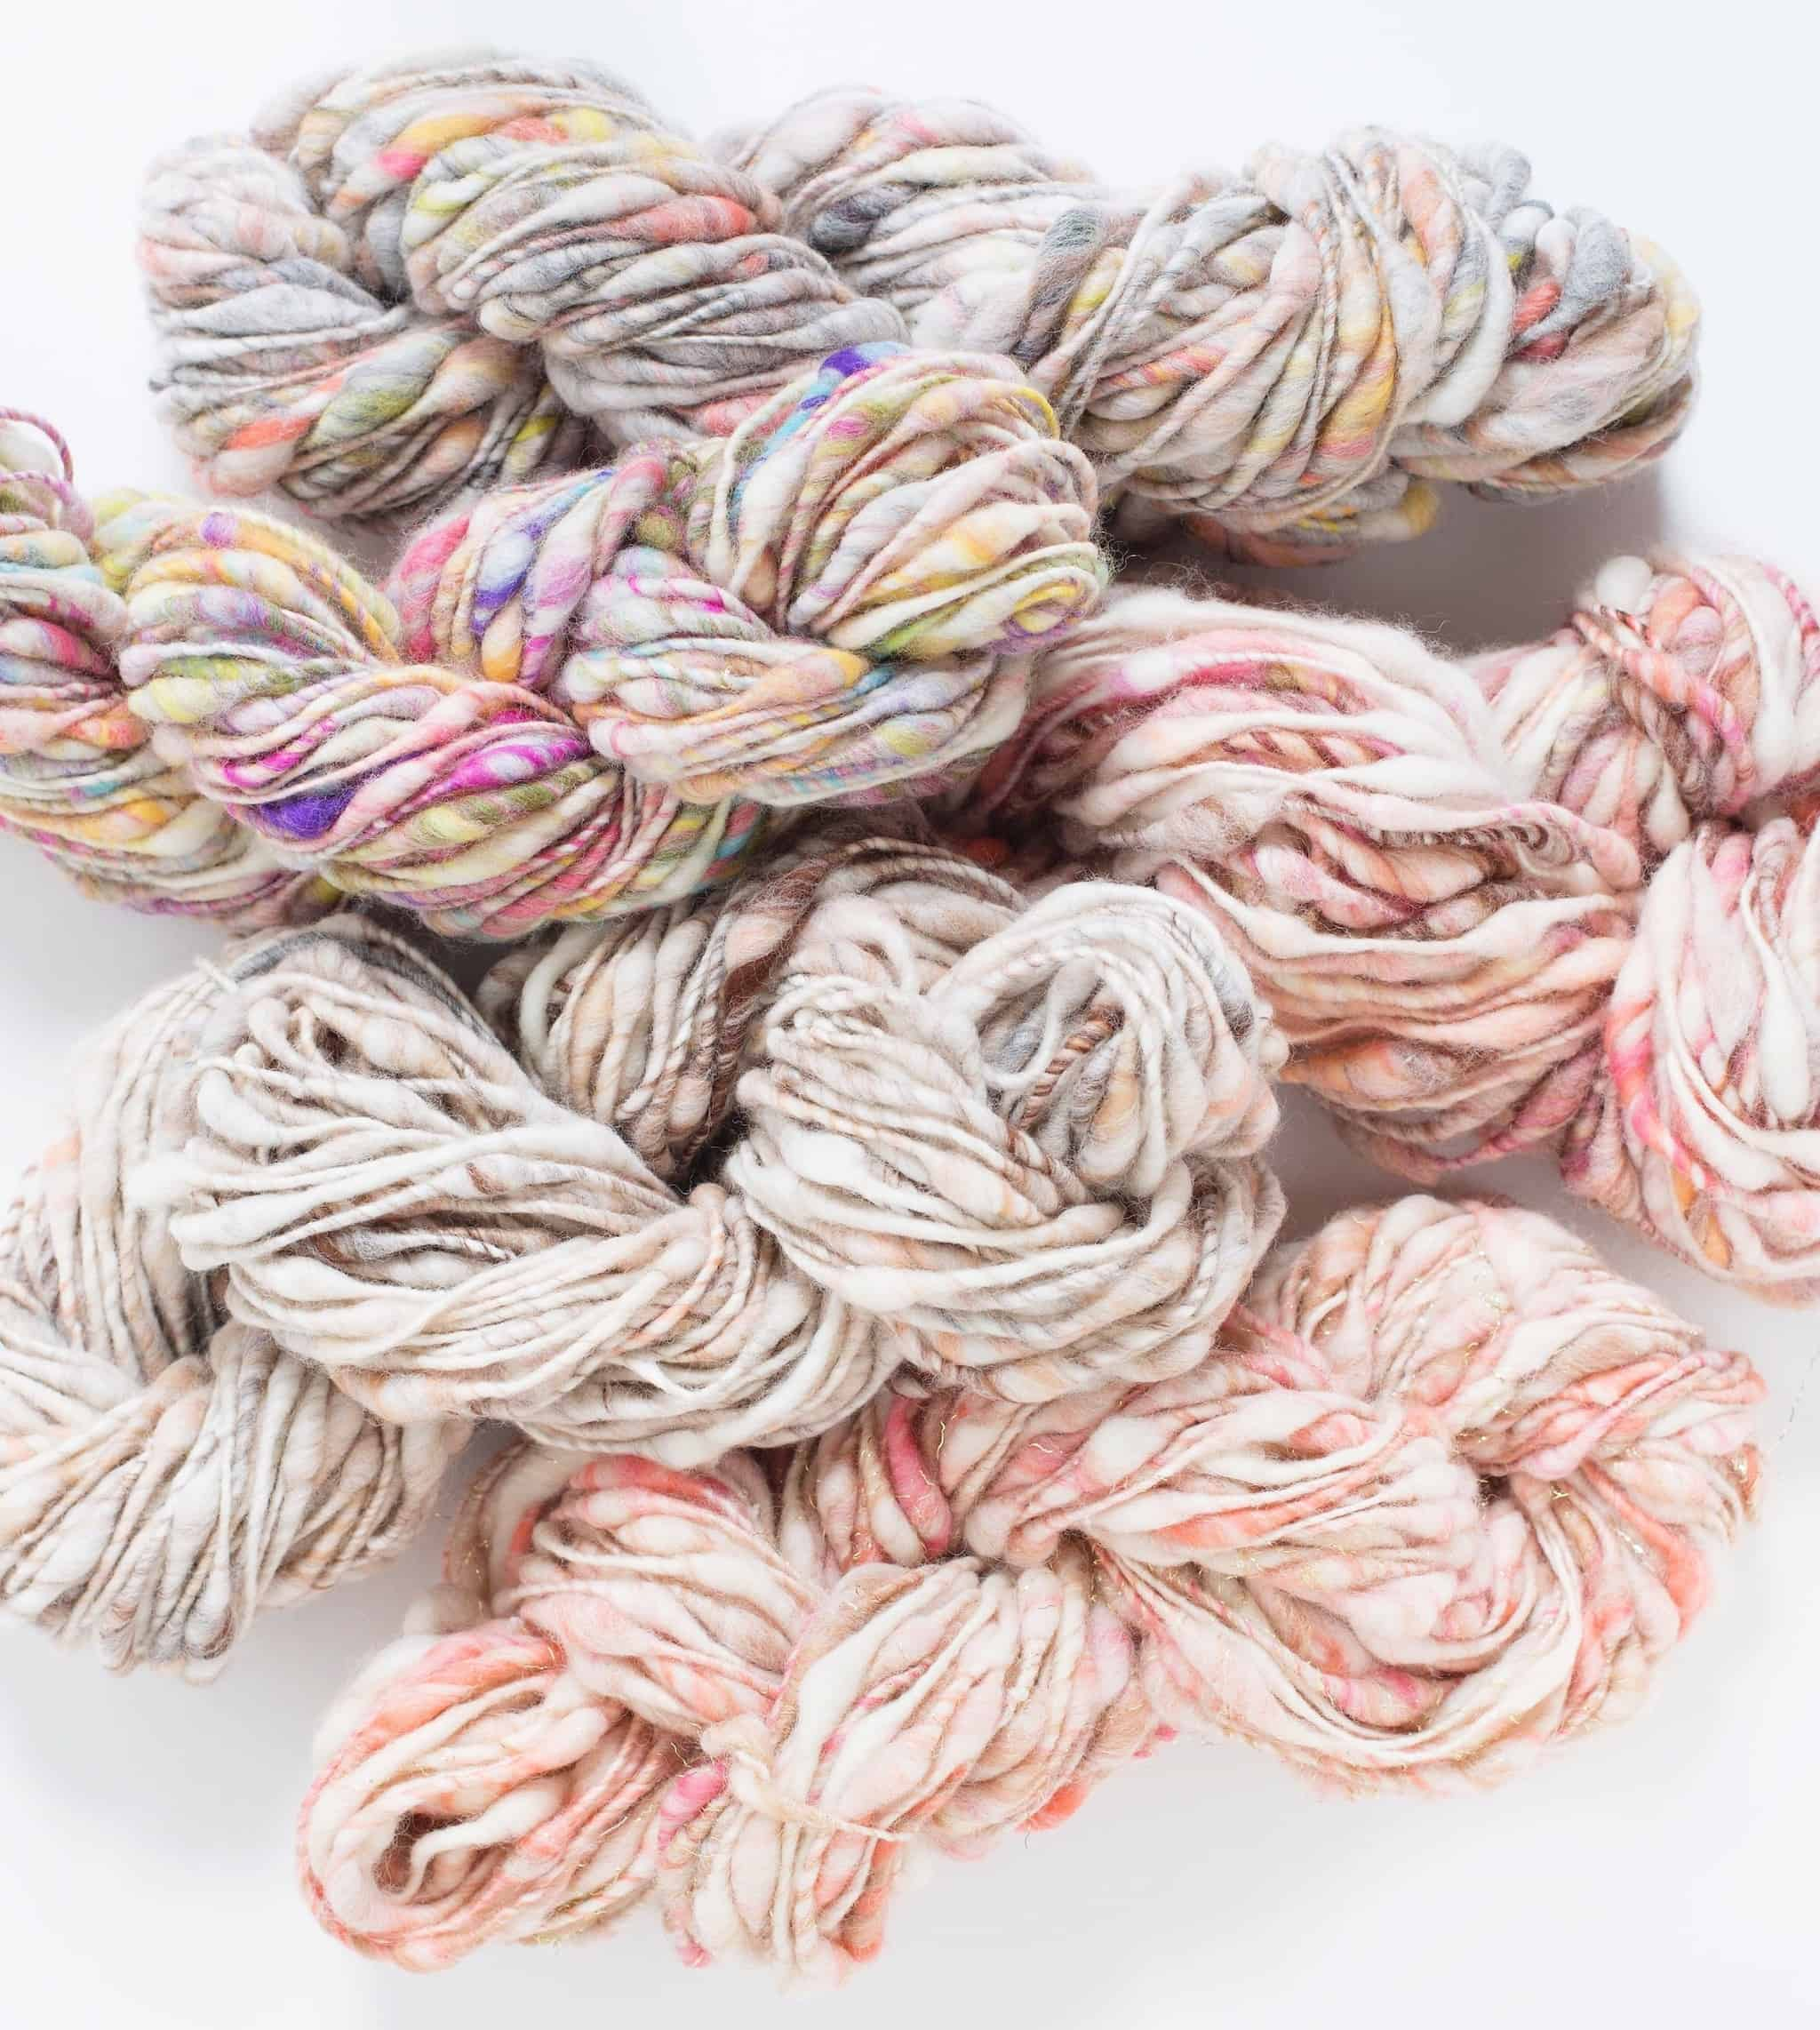 869b62cf54 knitting our national parks Archives - Indie Untangled